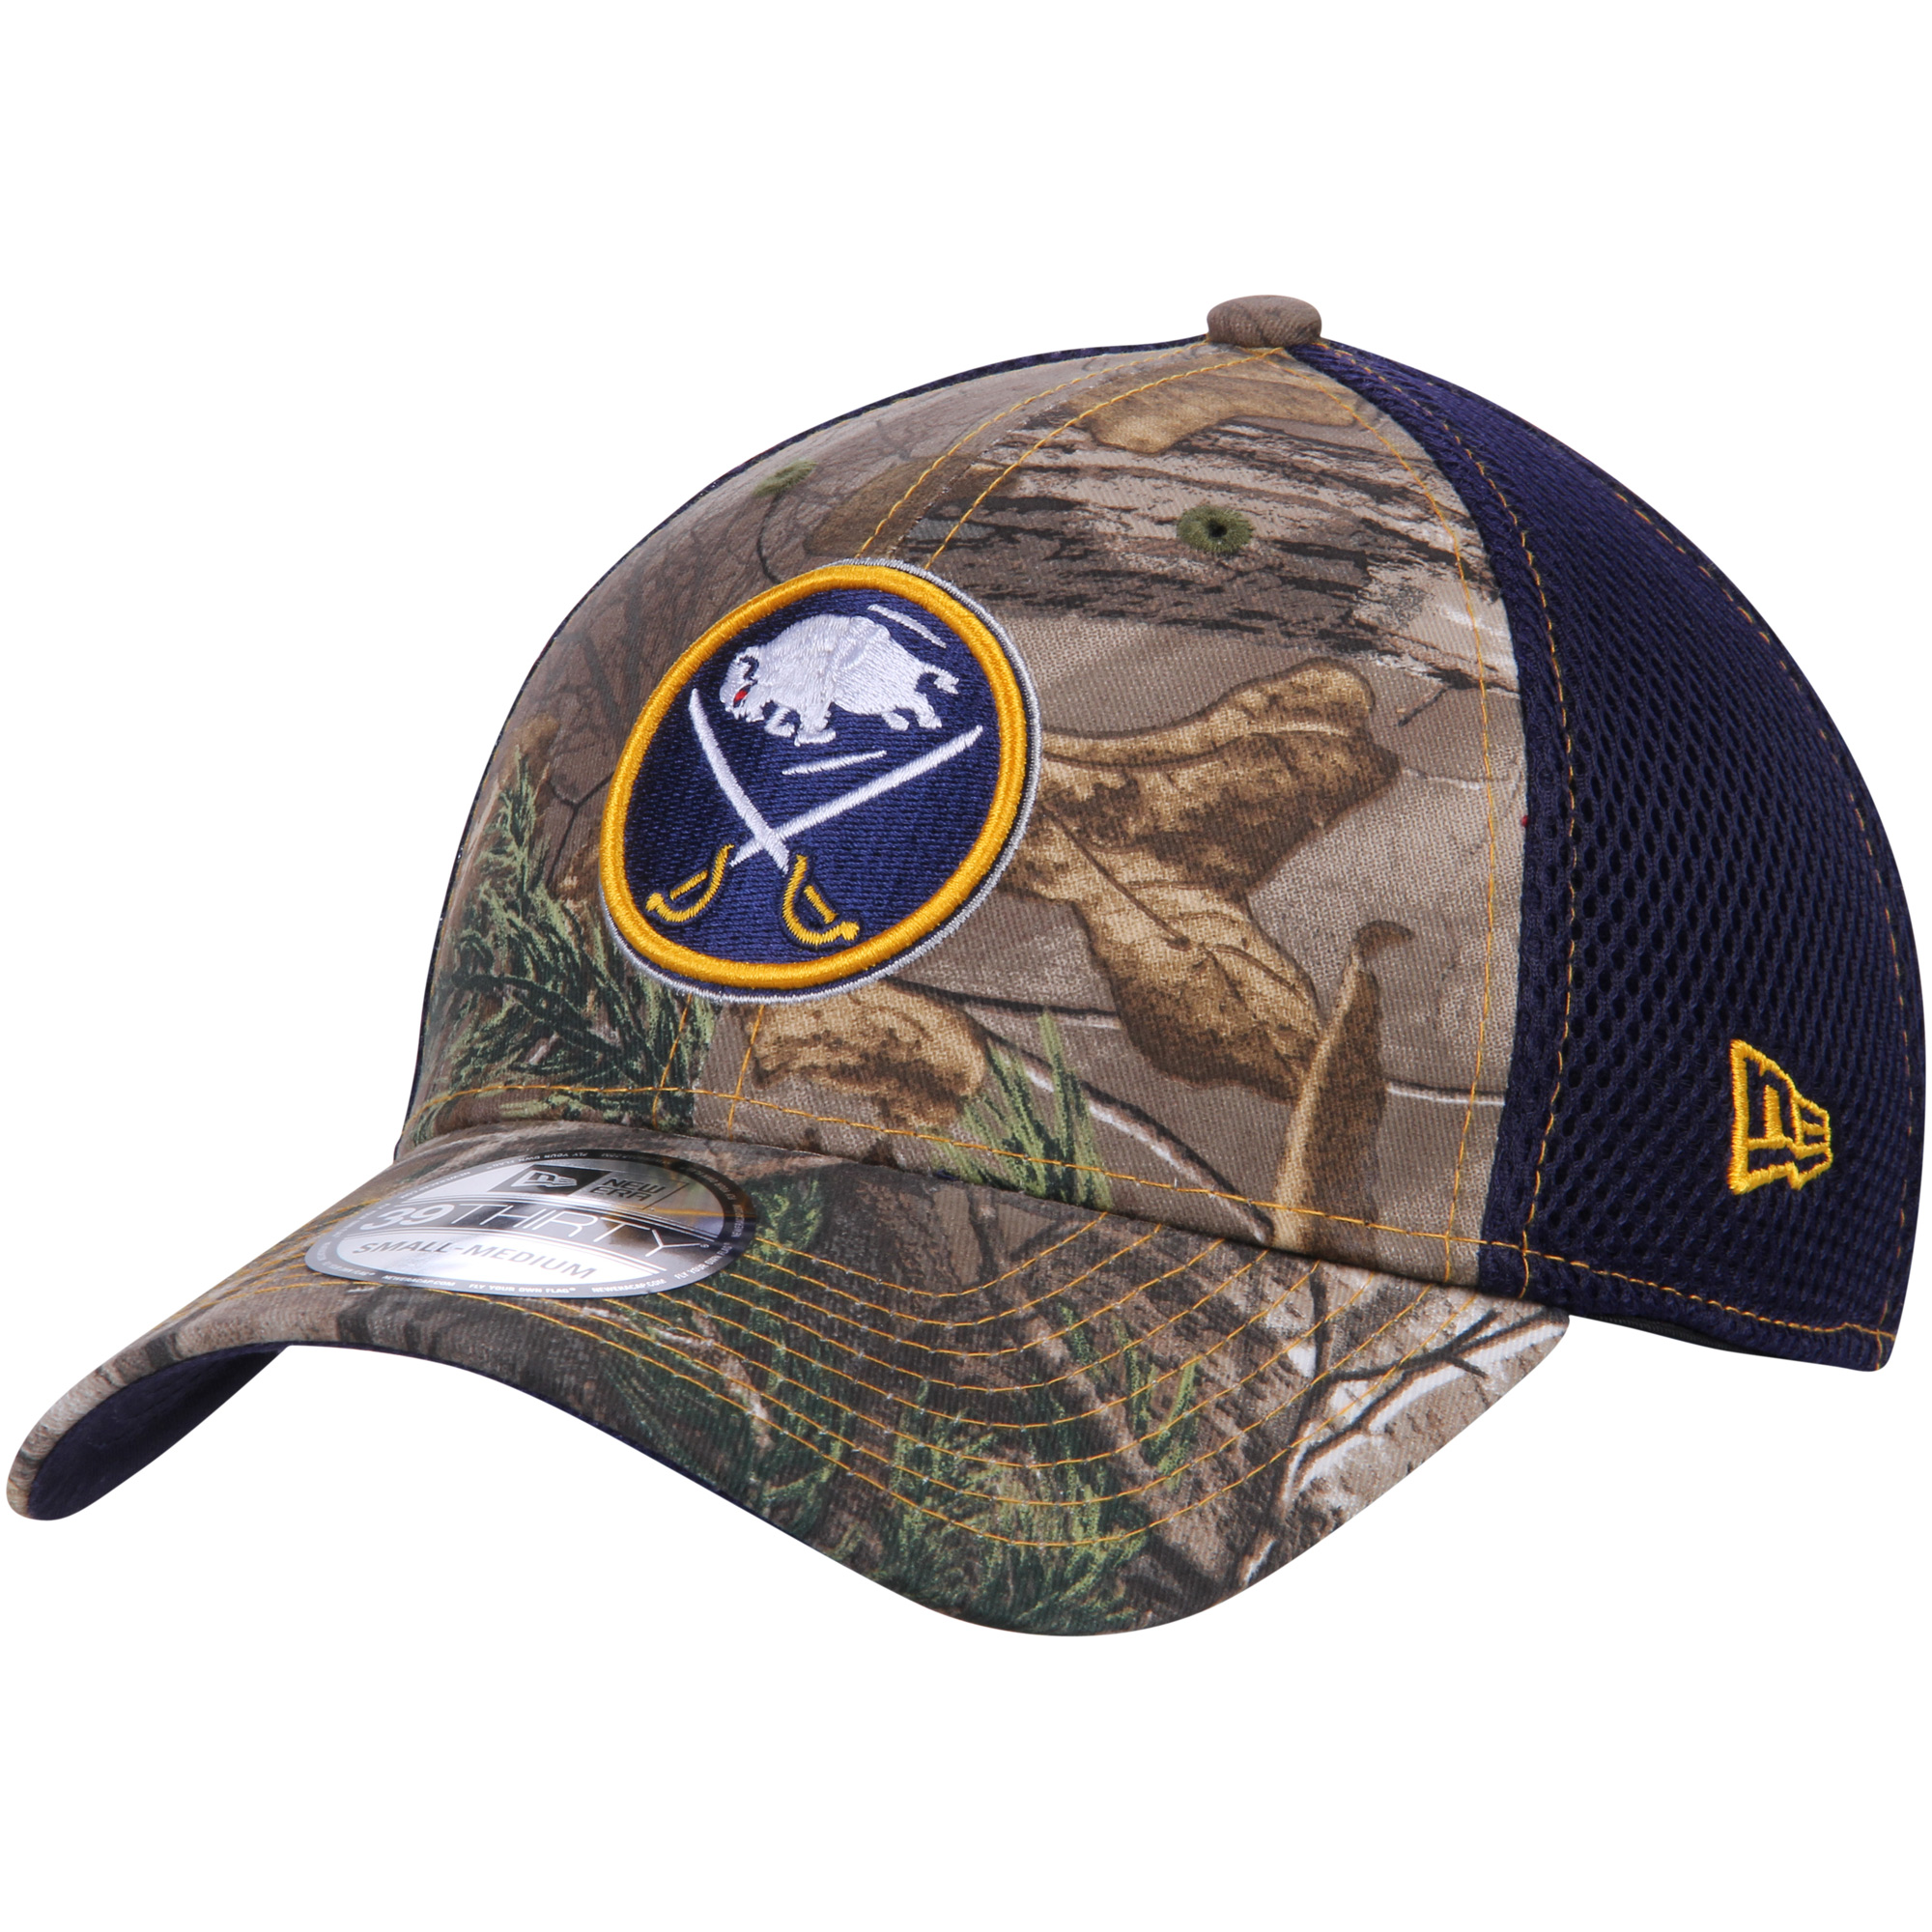 Buffalo Sabres New Era Neo 39THIRTY Flex Hat - Realtree Camo/Navy